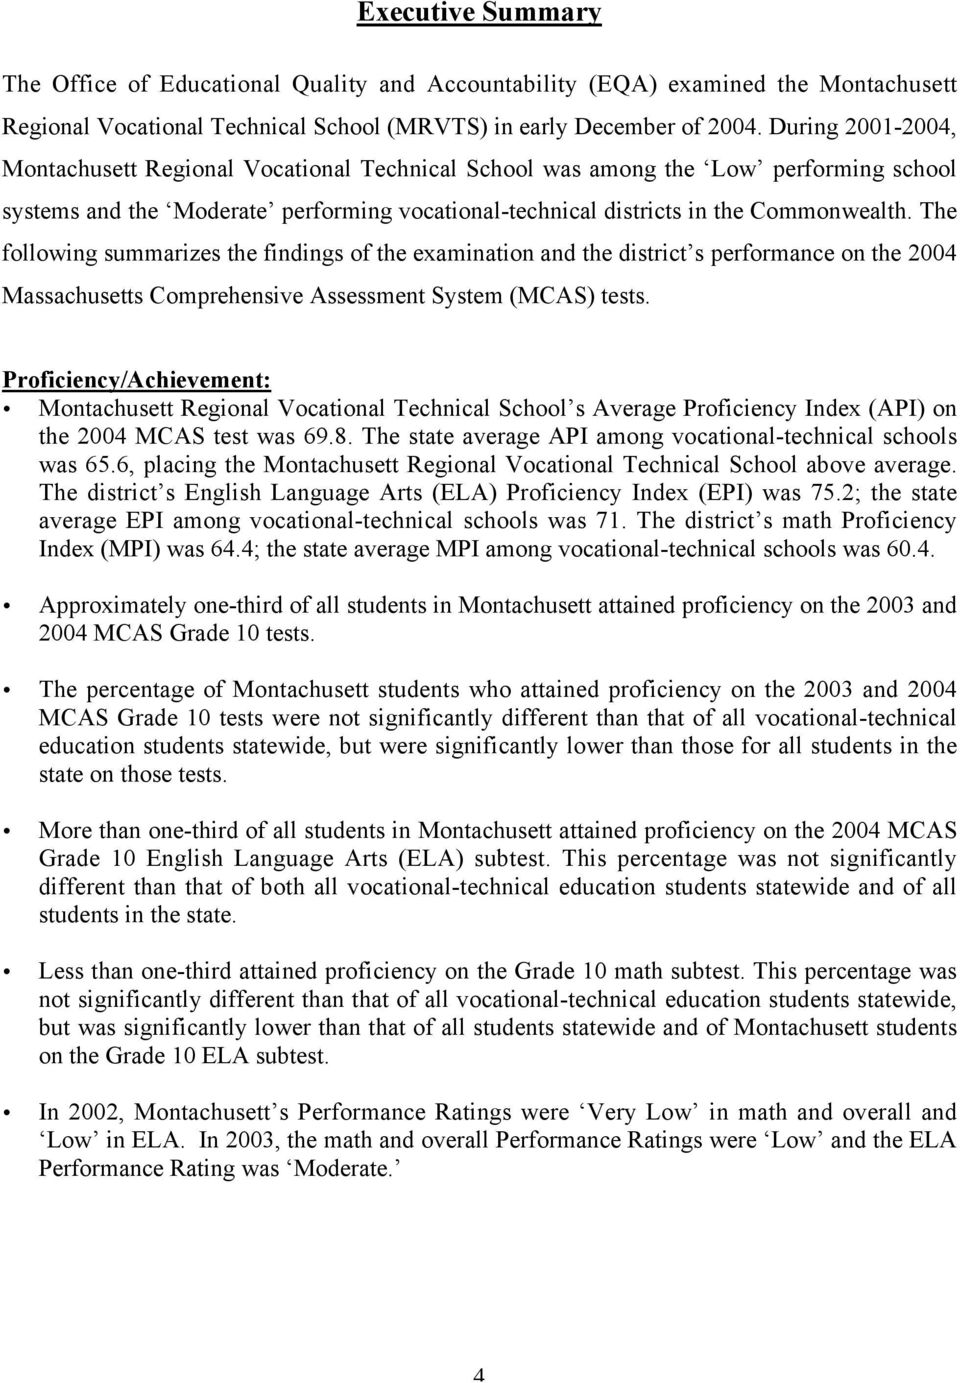 The following summarizes the findings of the examination and the district s performance on the 2004 Massachusetts Comprehensive Assessment System (MCAS) tests.